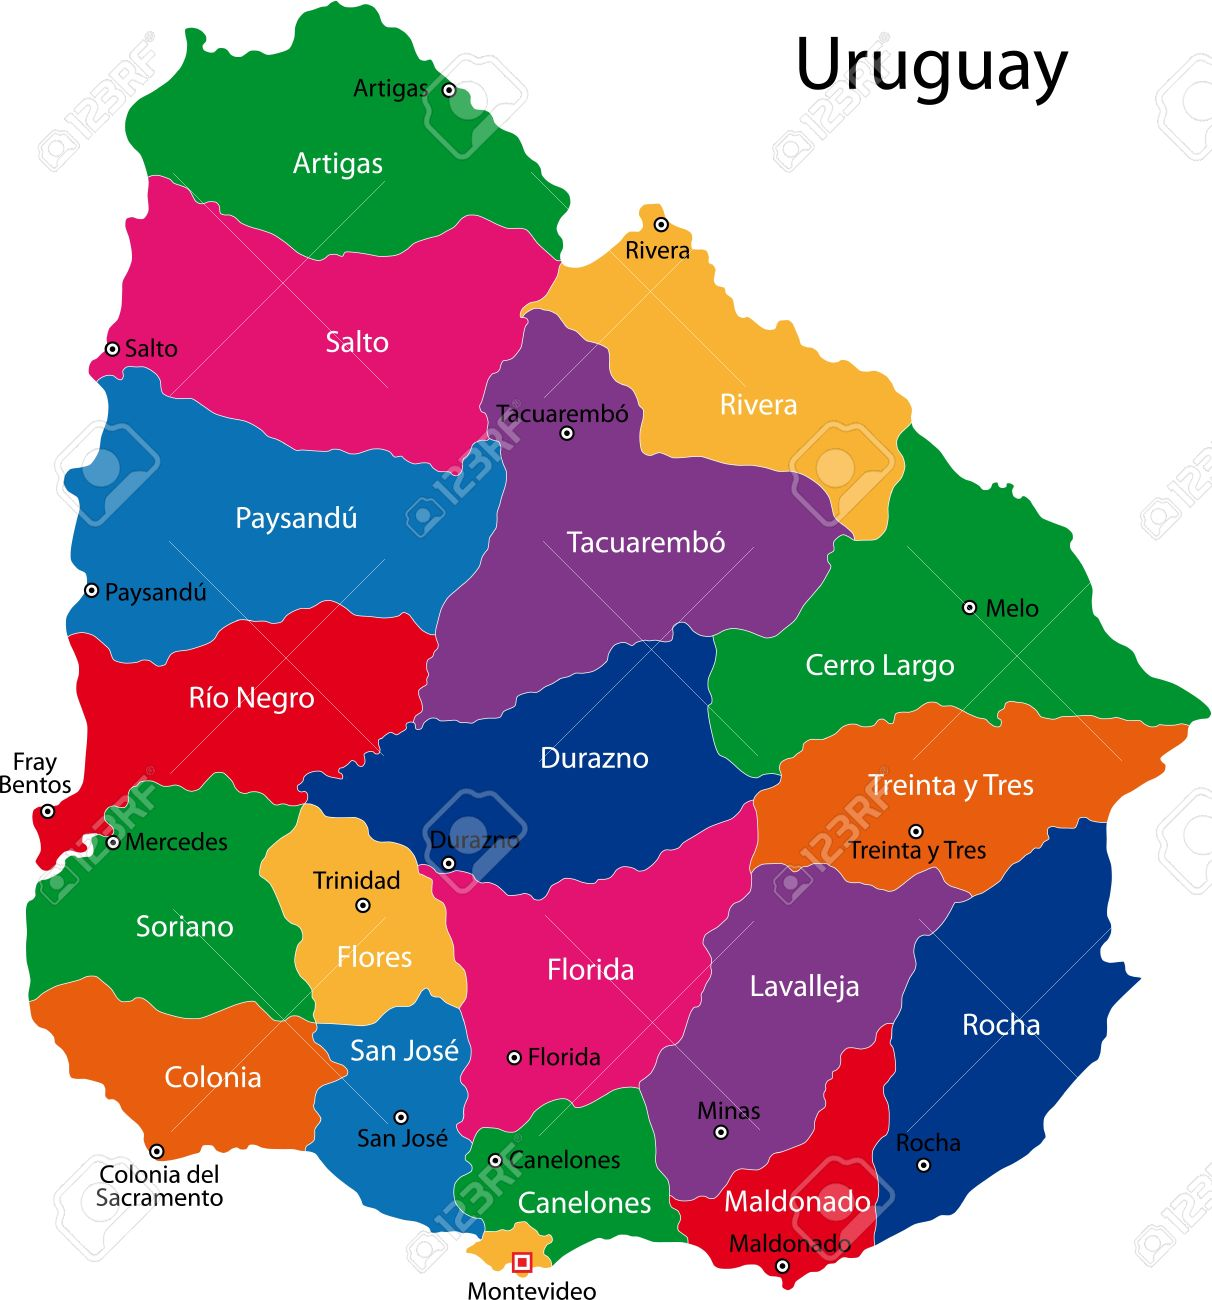 Map Of The Republic Of Uruguay With The Departments Colored In ...